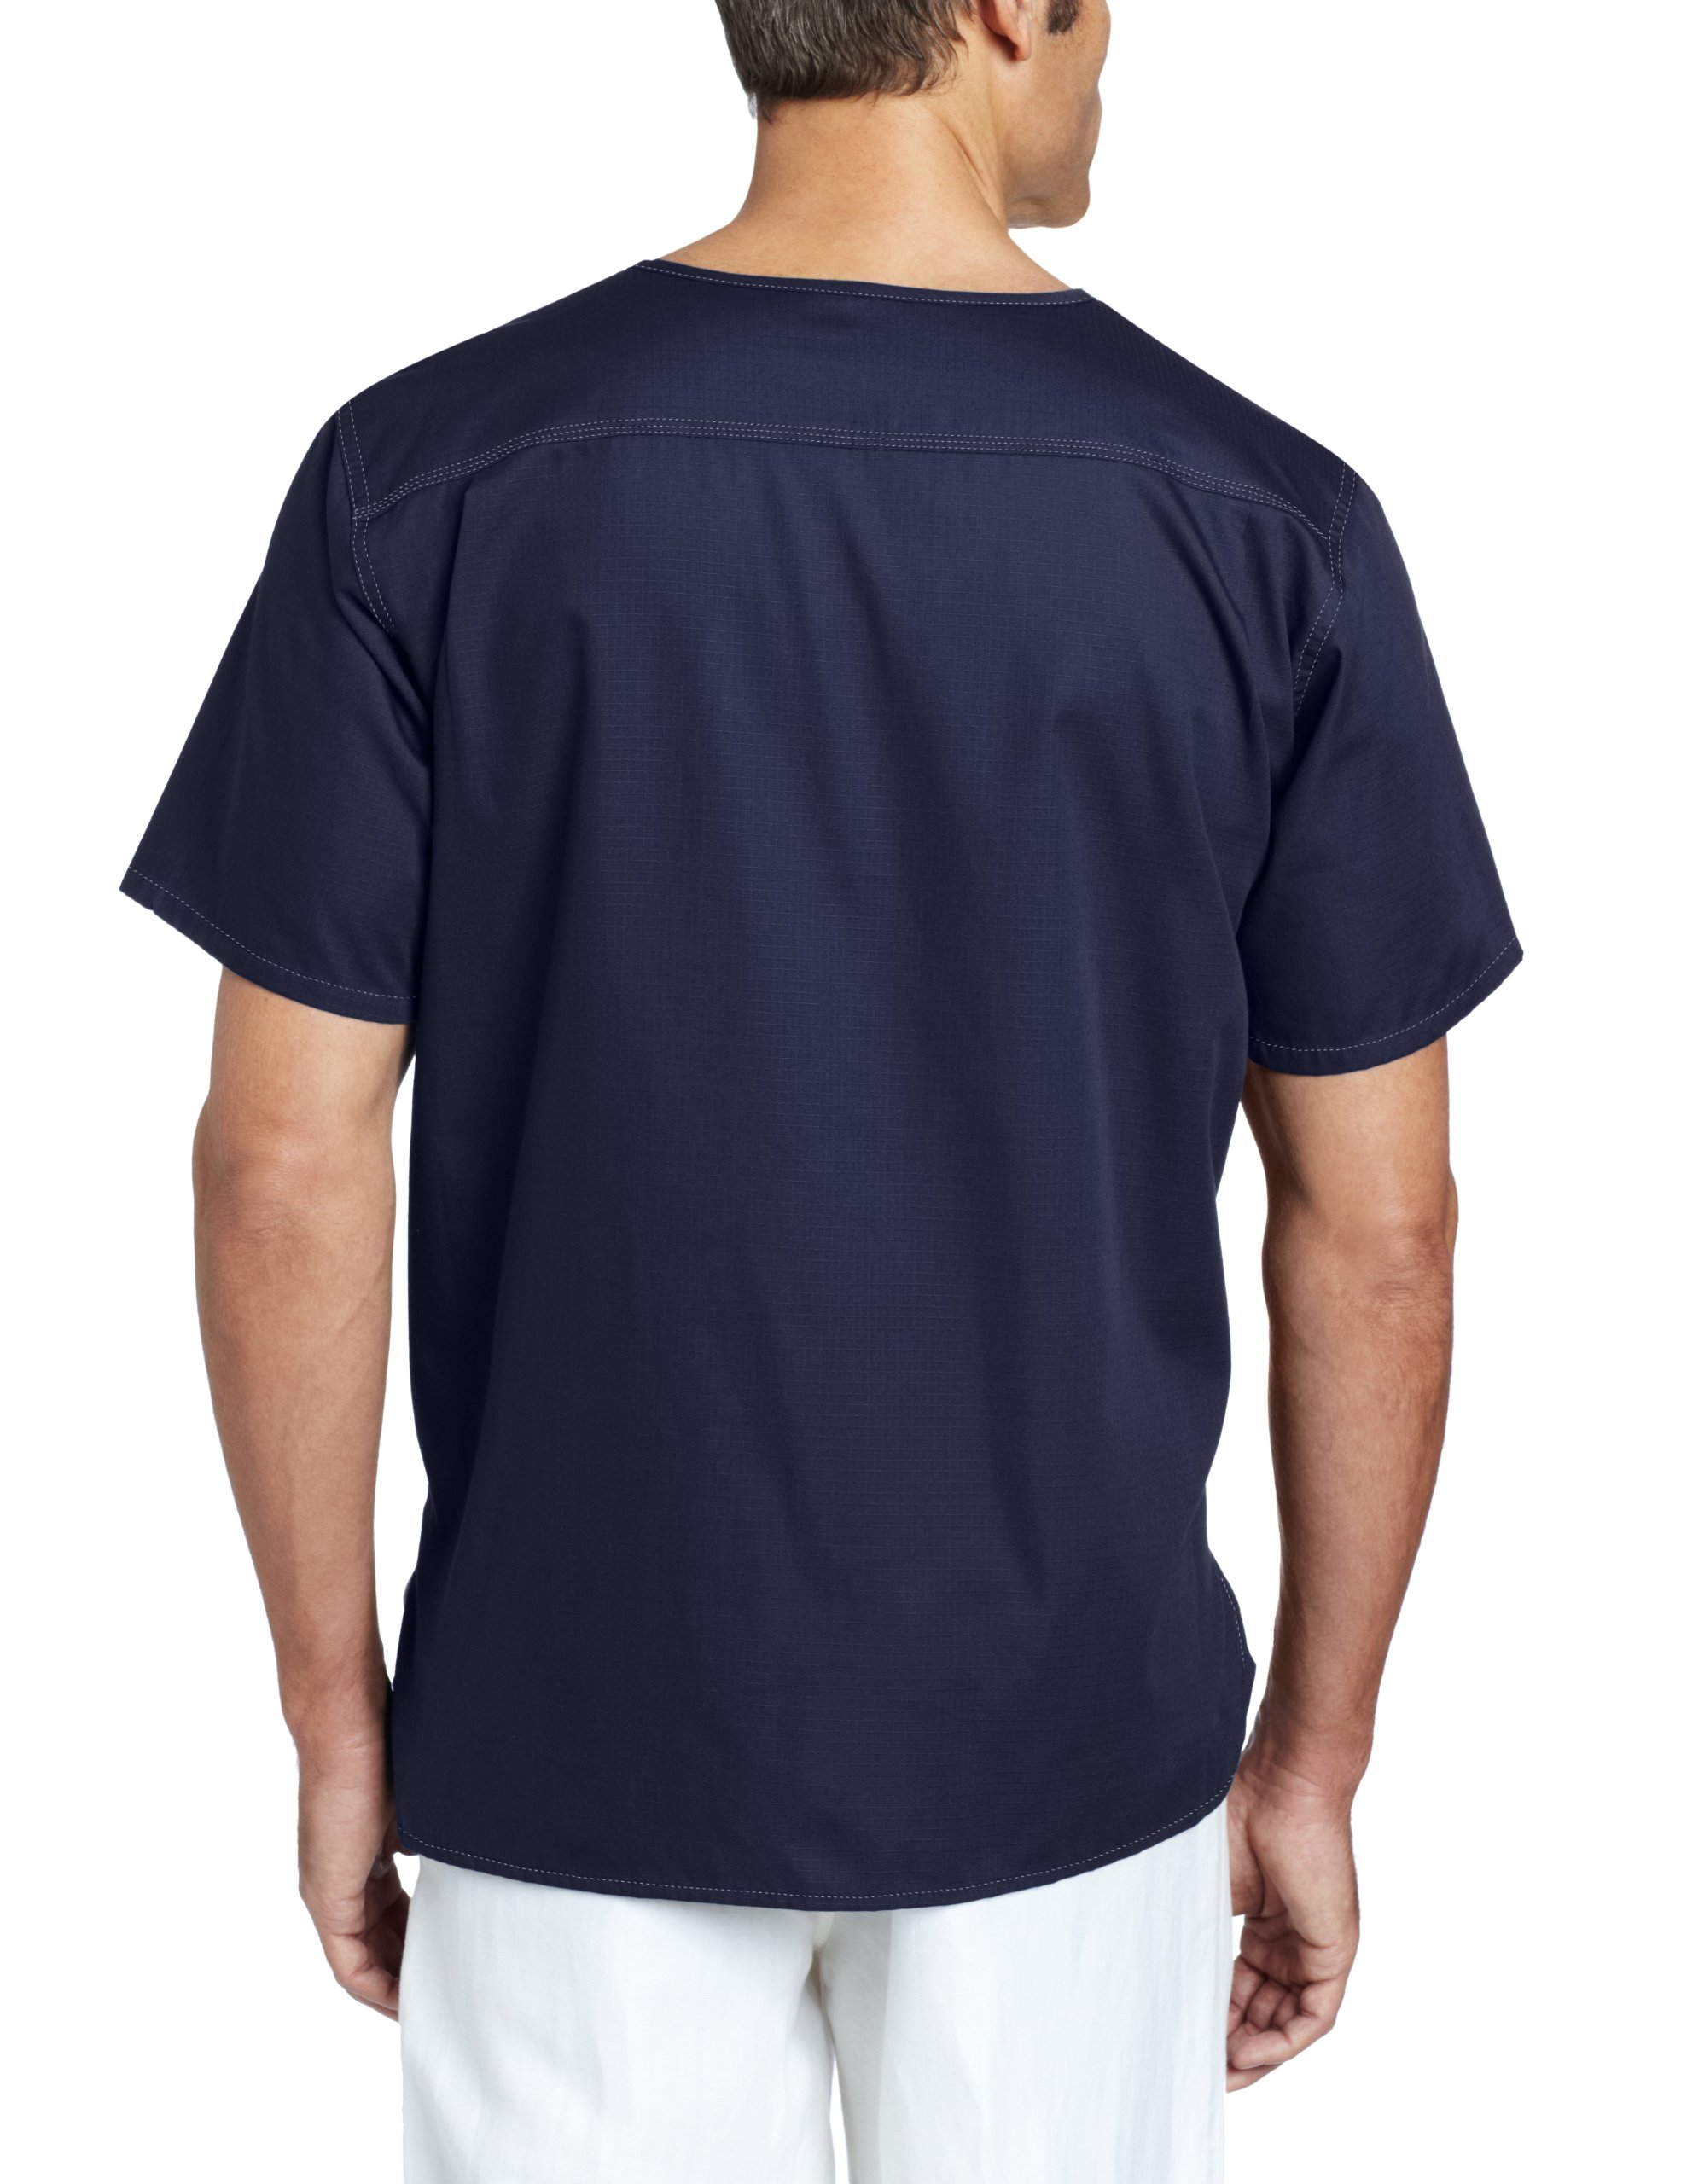 eef29bc7 Carhartt Men's Solid Ripstop Utility Scrub Top, Navy, Medium ...